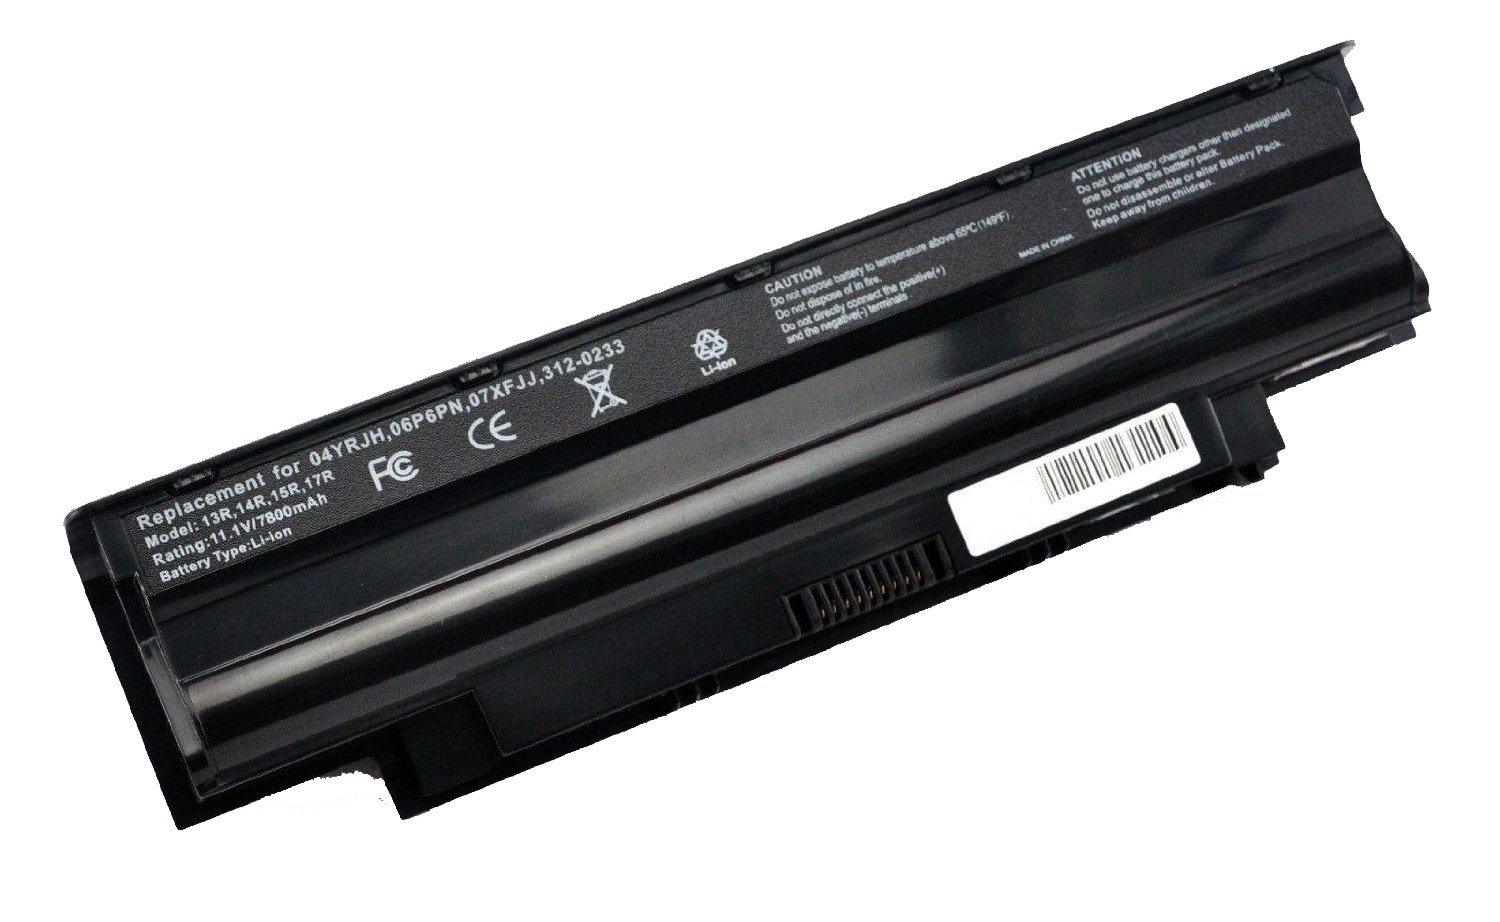 SOLICE® 11.1V 7800mAh Battery for Dell Inspiron 3420 3520 13R 14R 15R 17R N3010 N4010 N4110 N5010 N5110 N7110,fit P/N: 4T7JN 04YRJH 07XFJJ 312-0233